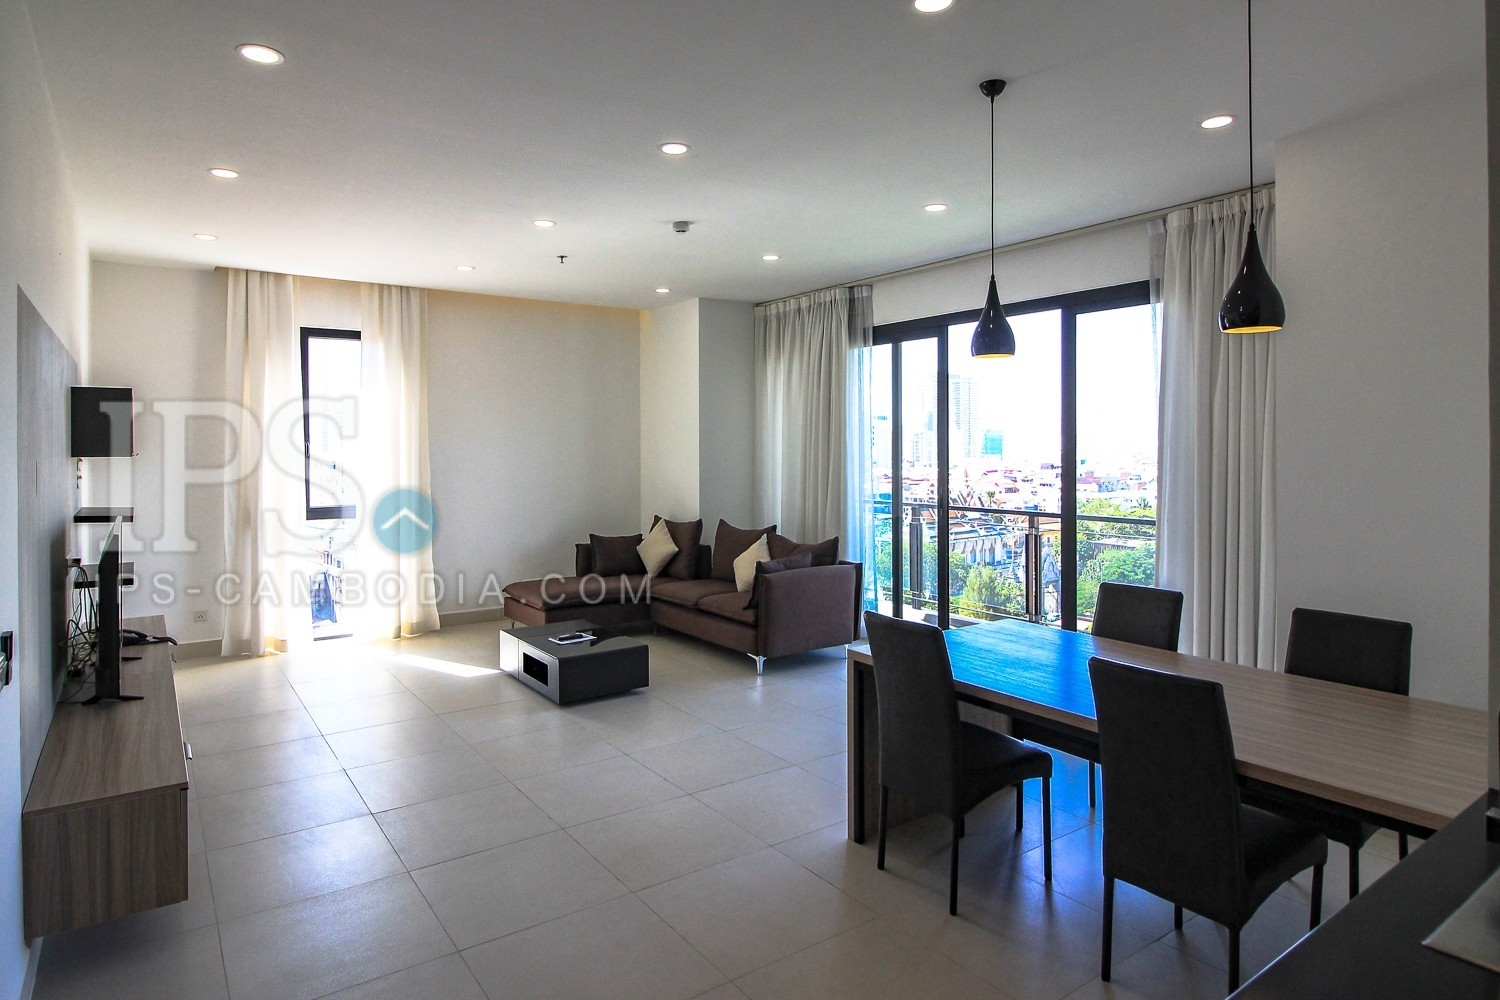 3 Bedroom Condo Unit For Rent - Beoung Riang, Phnom Penh